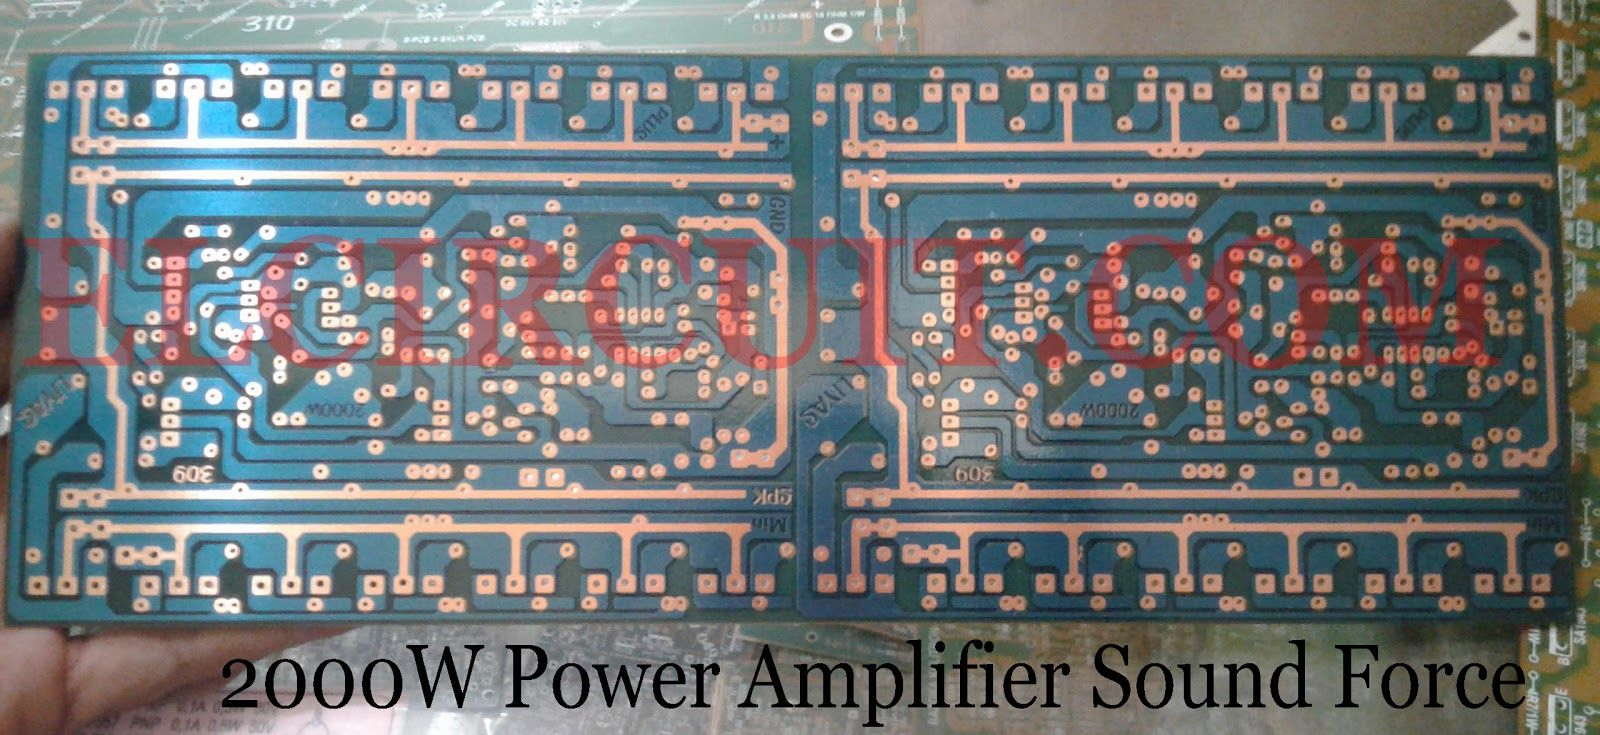 2000w Power Amplifier Circuit Diagram The Water Cycle Worksheet Complete Pcb Layout In 2019 Electronic